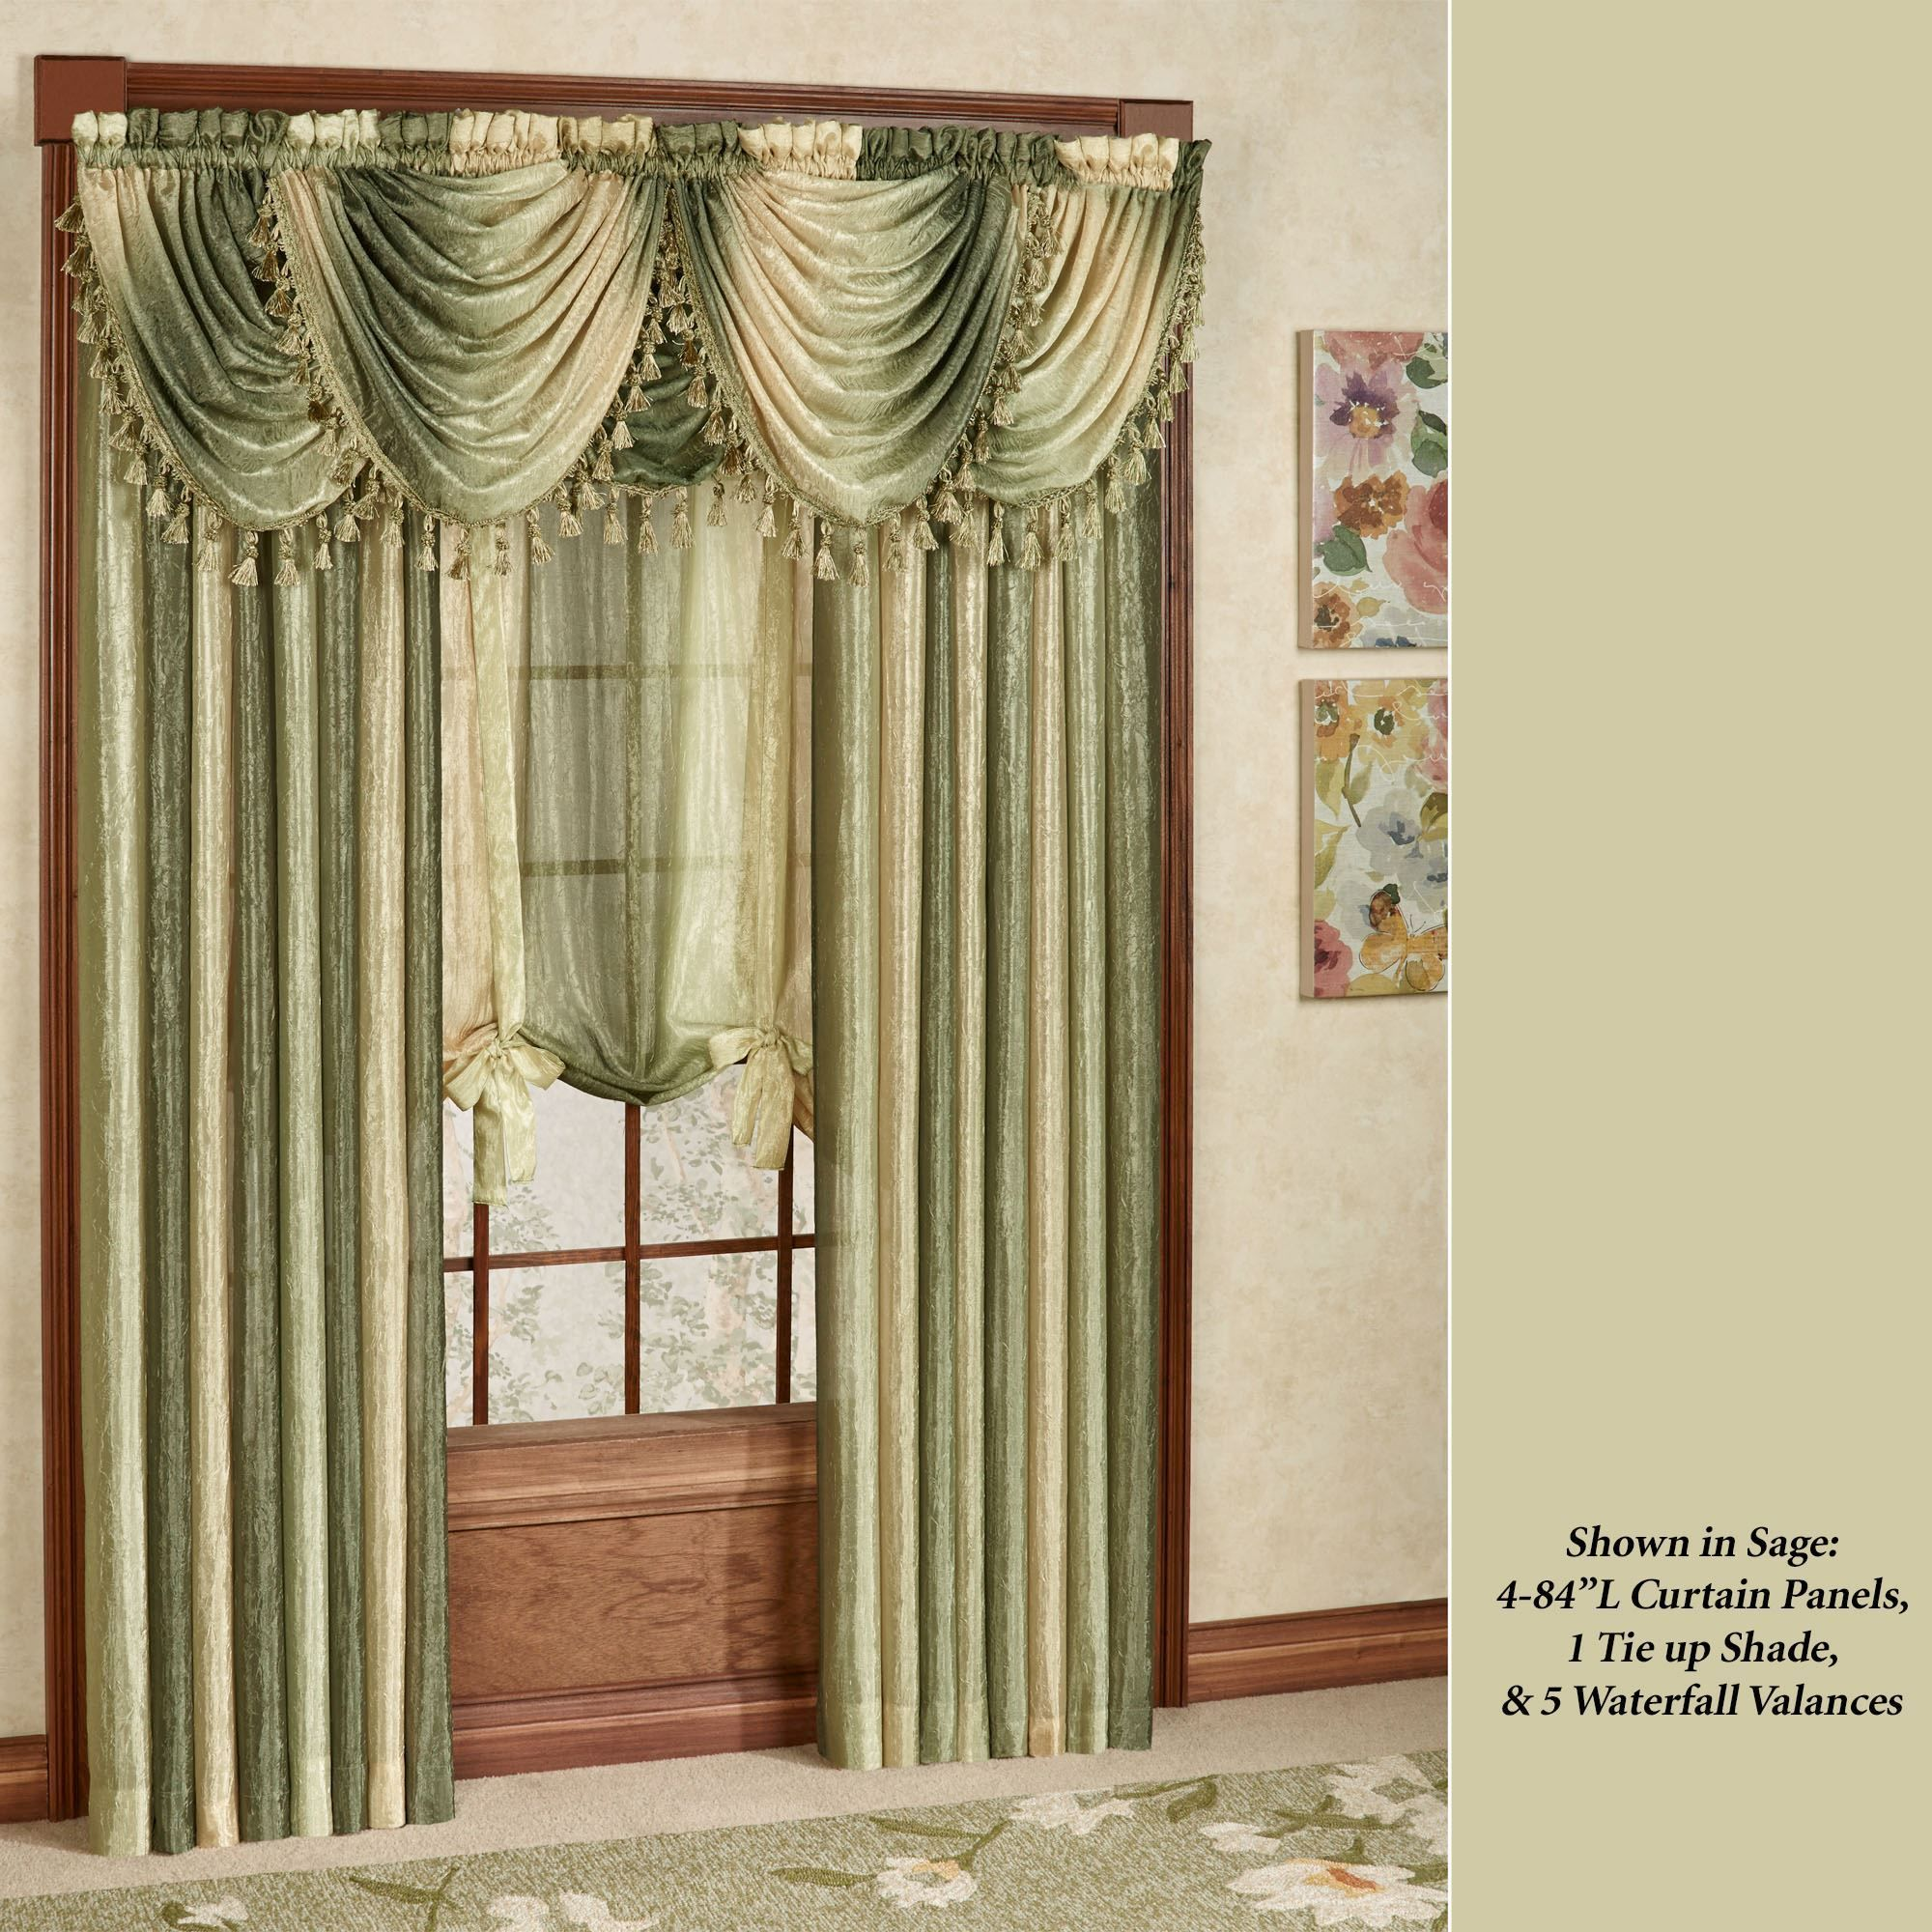 Ombre Semi Sheer Waterfall Valances Waterfall Valance Living Room Drapes Curtains